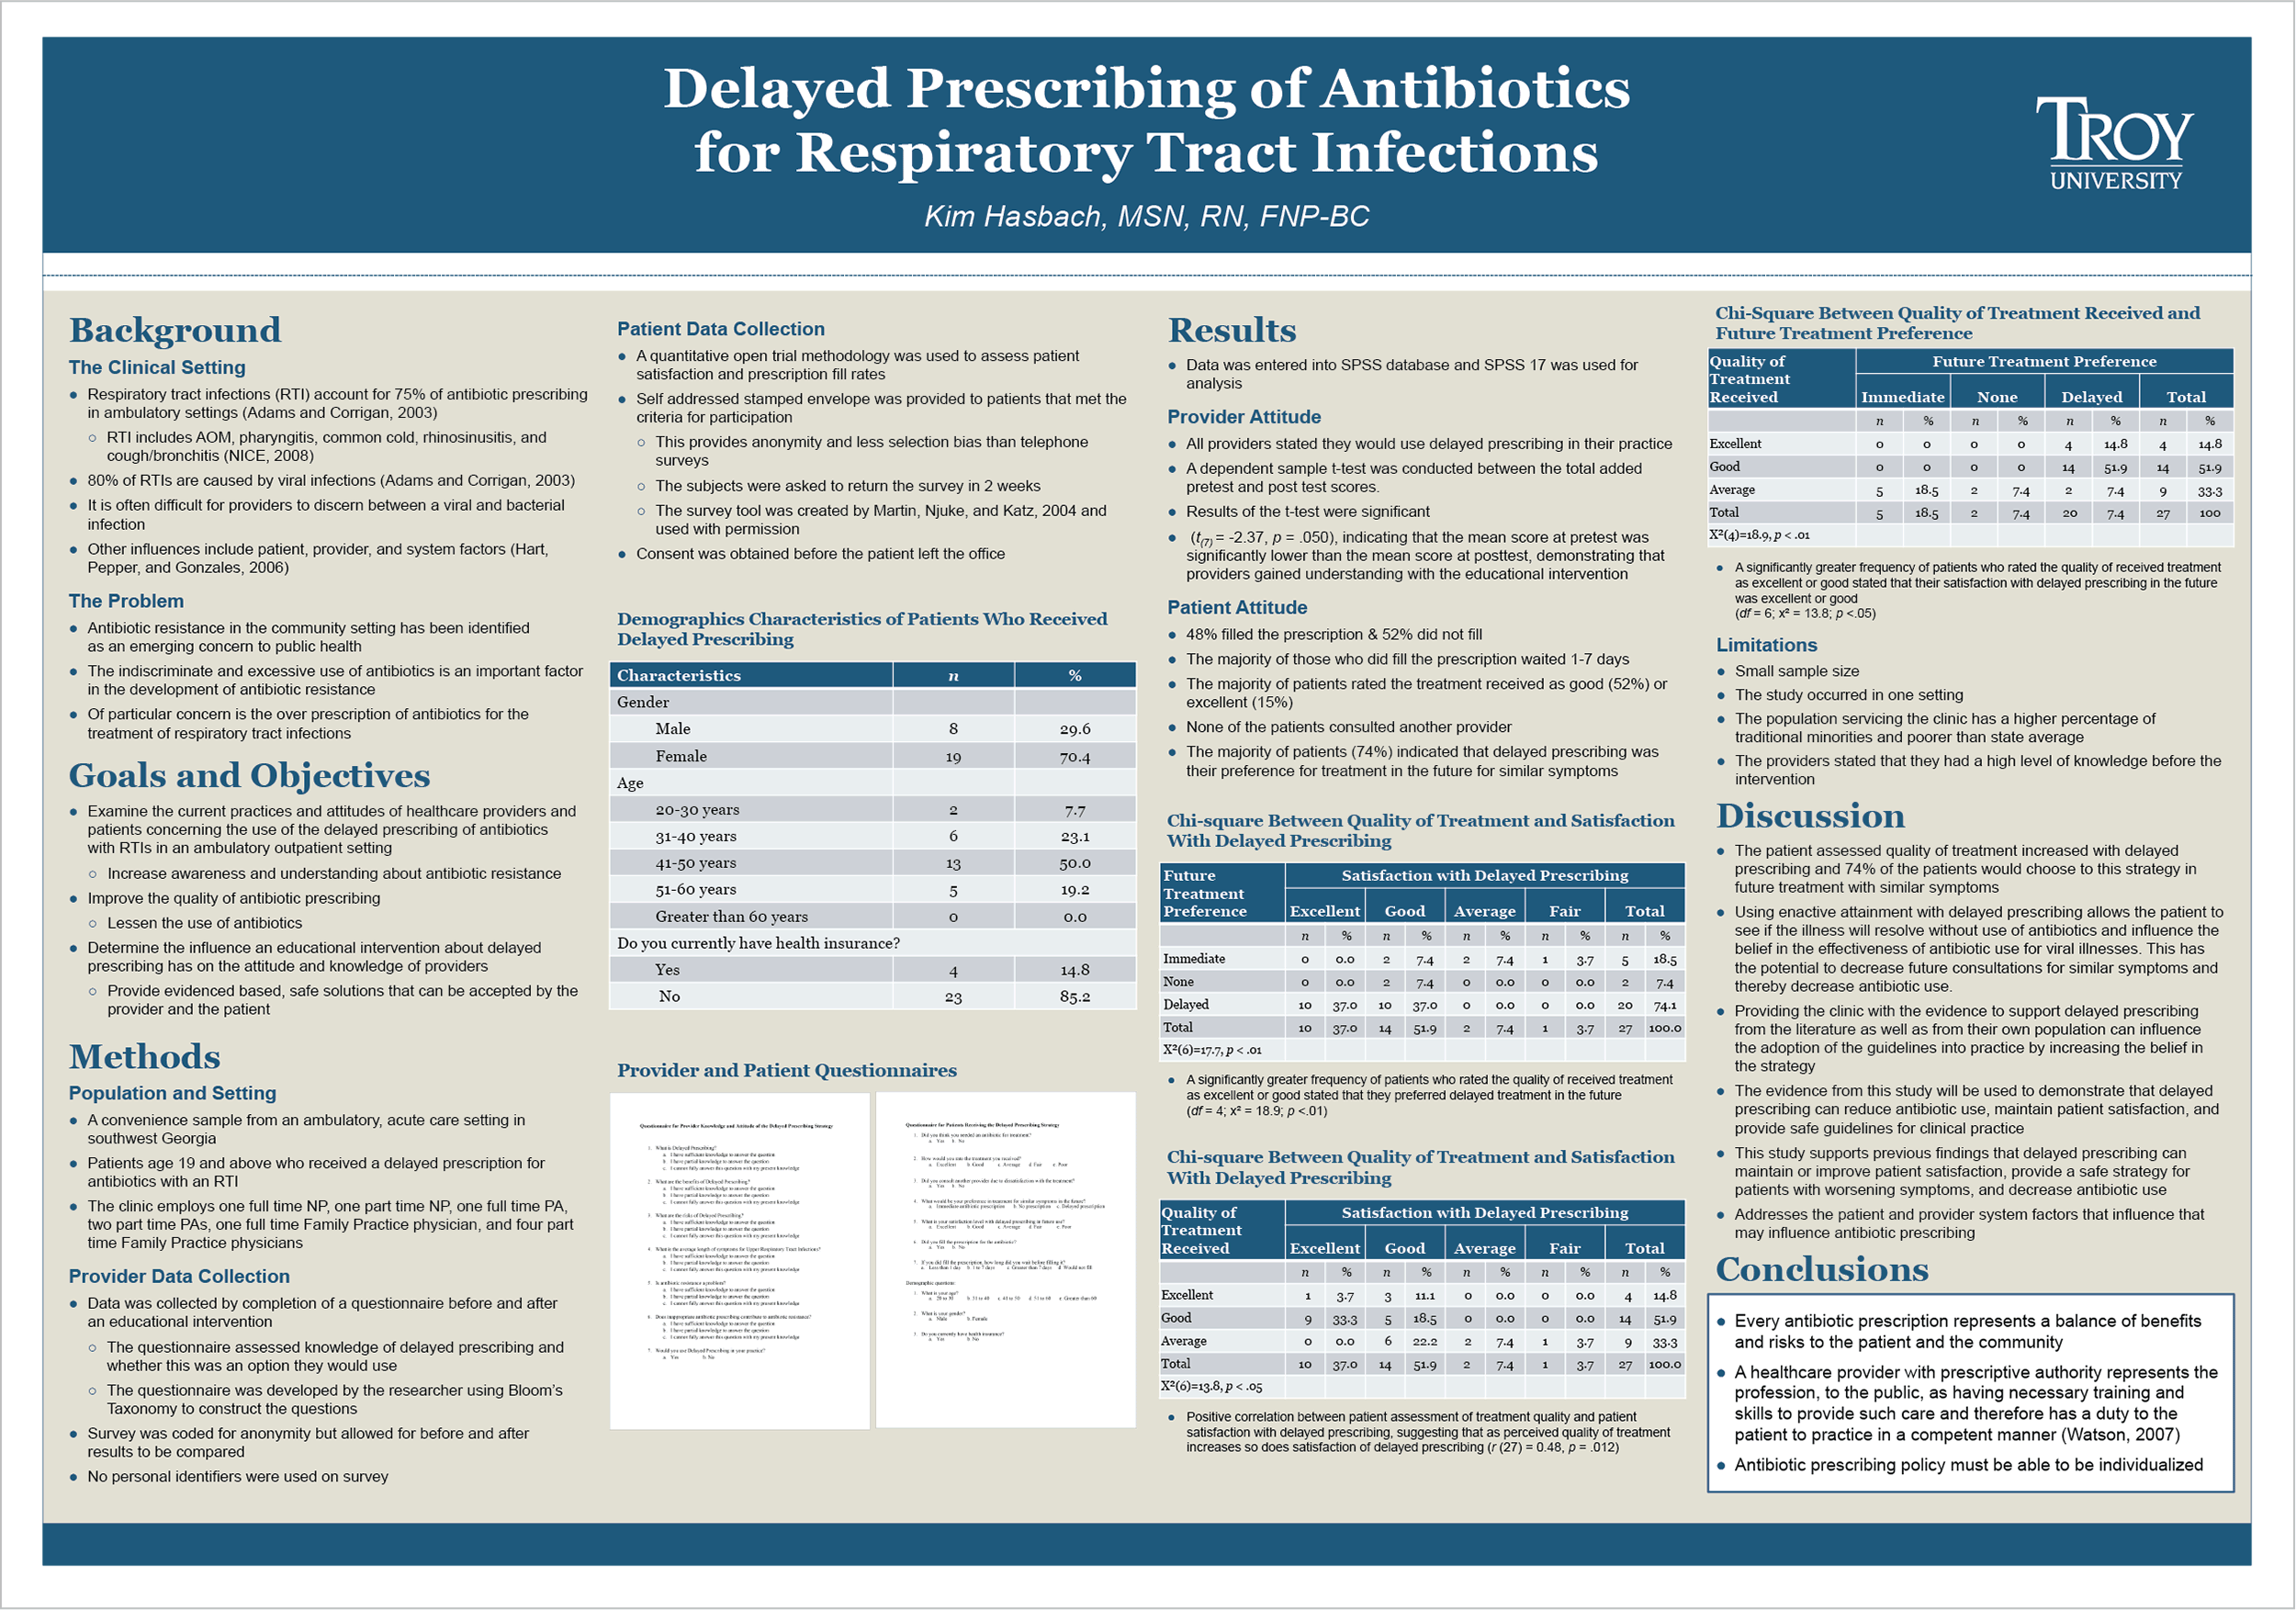 Research poster design by Virtual Apiary for Troy Hasbach